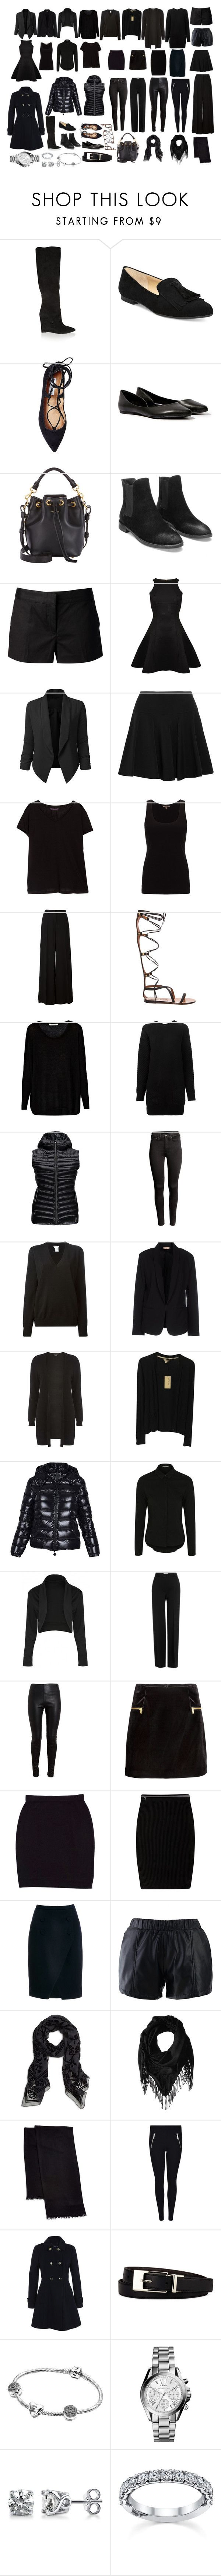 All Black Dress Code by eliza-elisei on Polyvore featuring Proenza Schouler, Ted Baker, Tomas Maier, Century Seven, Dorothy Perkins, Jigsaw, Violeta by Mango, George, Moncler and Burberry